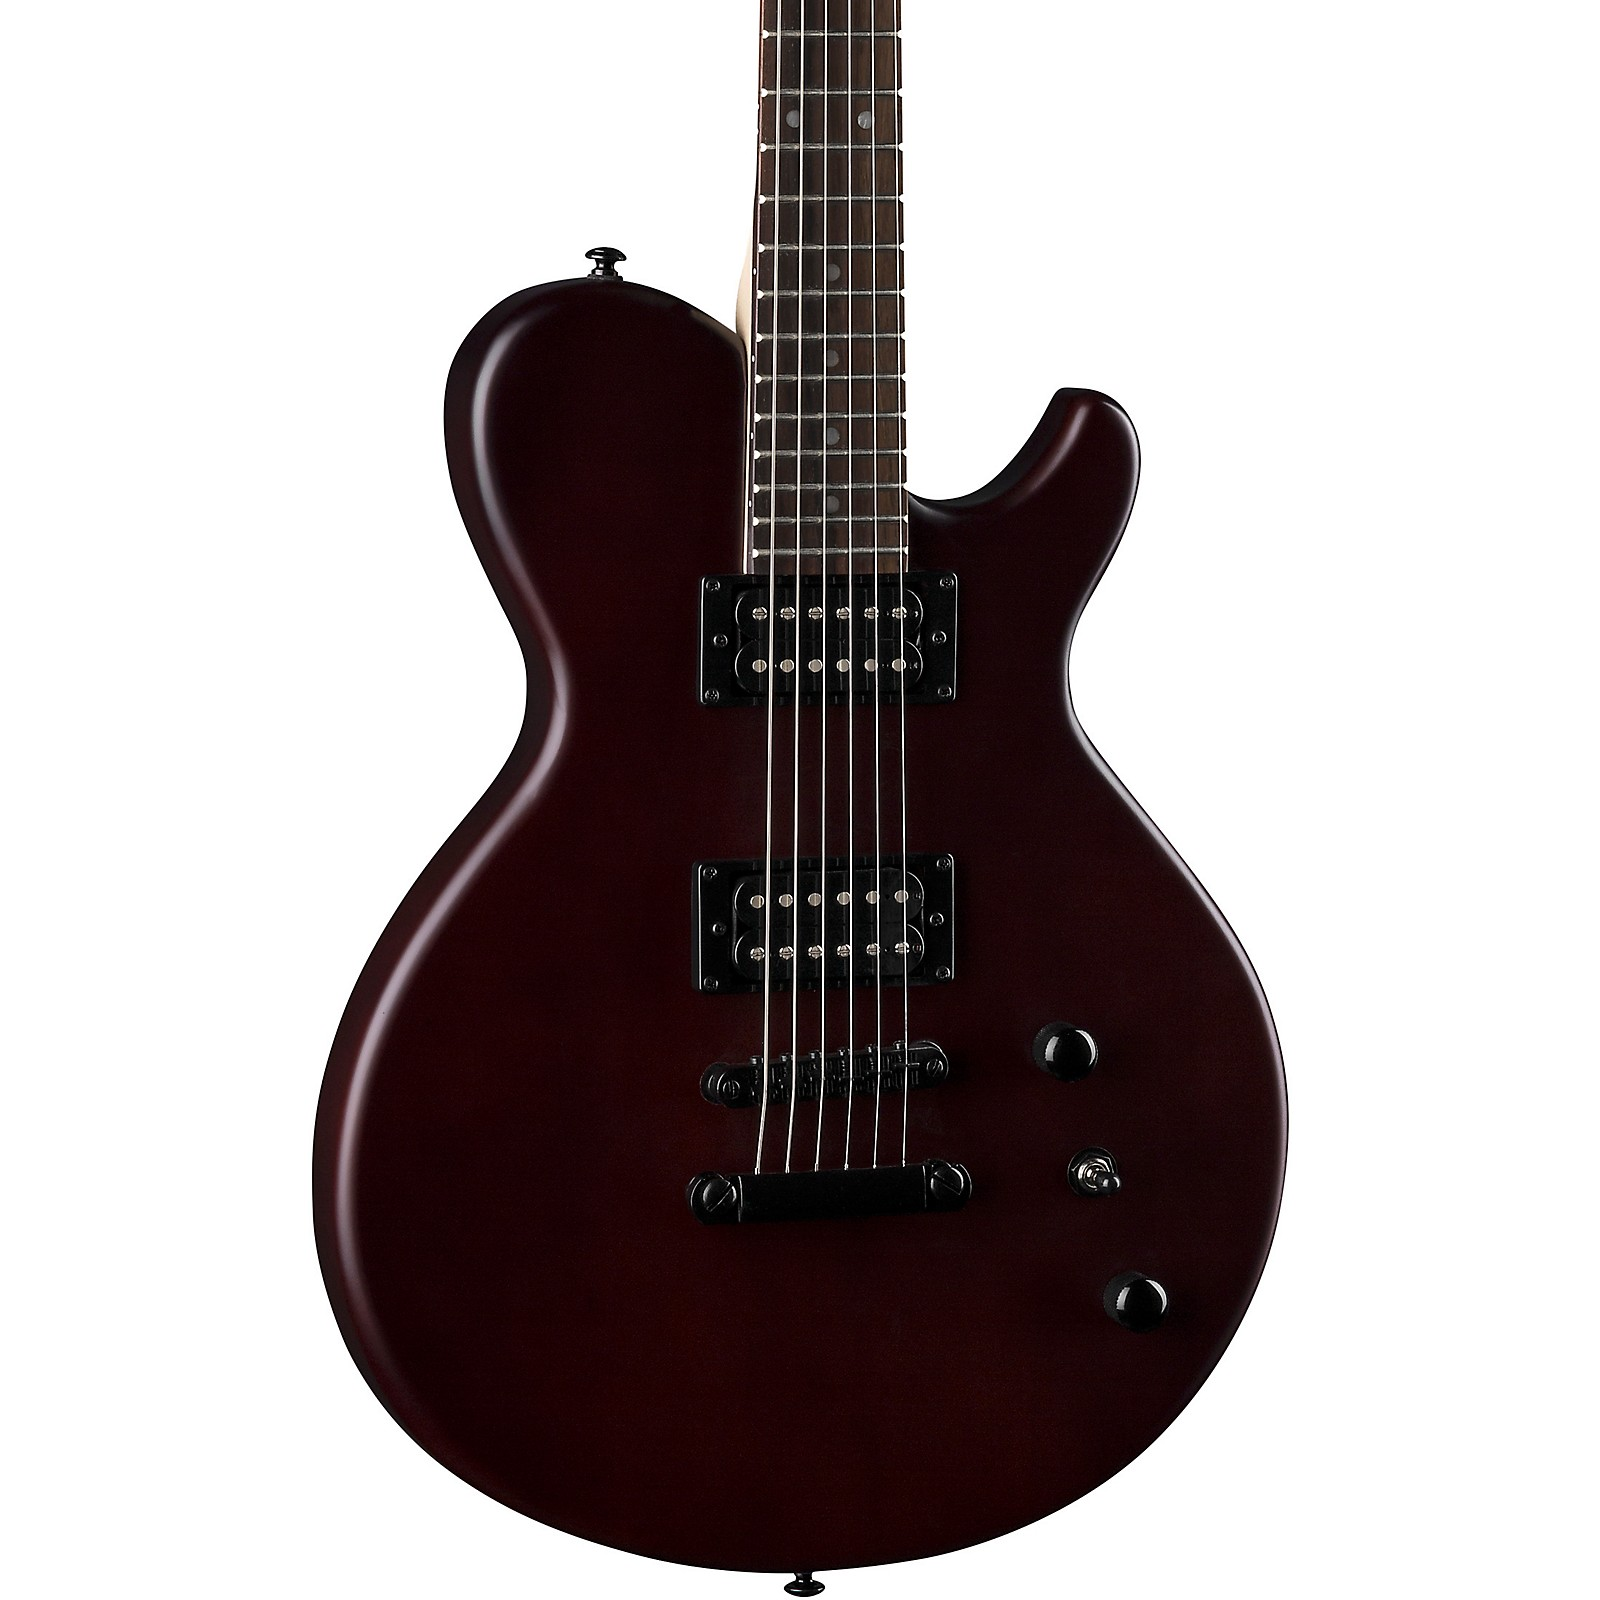 Dean Evo XM Electric Guitar Natural Mahogany | Guitar CenterGuitar Center